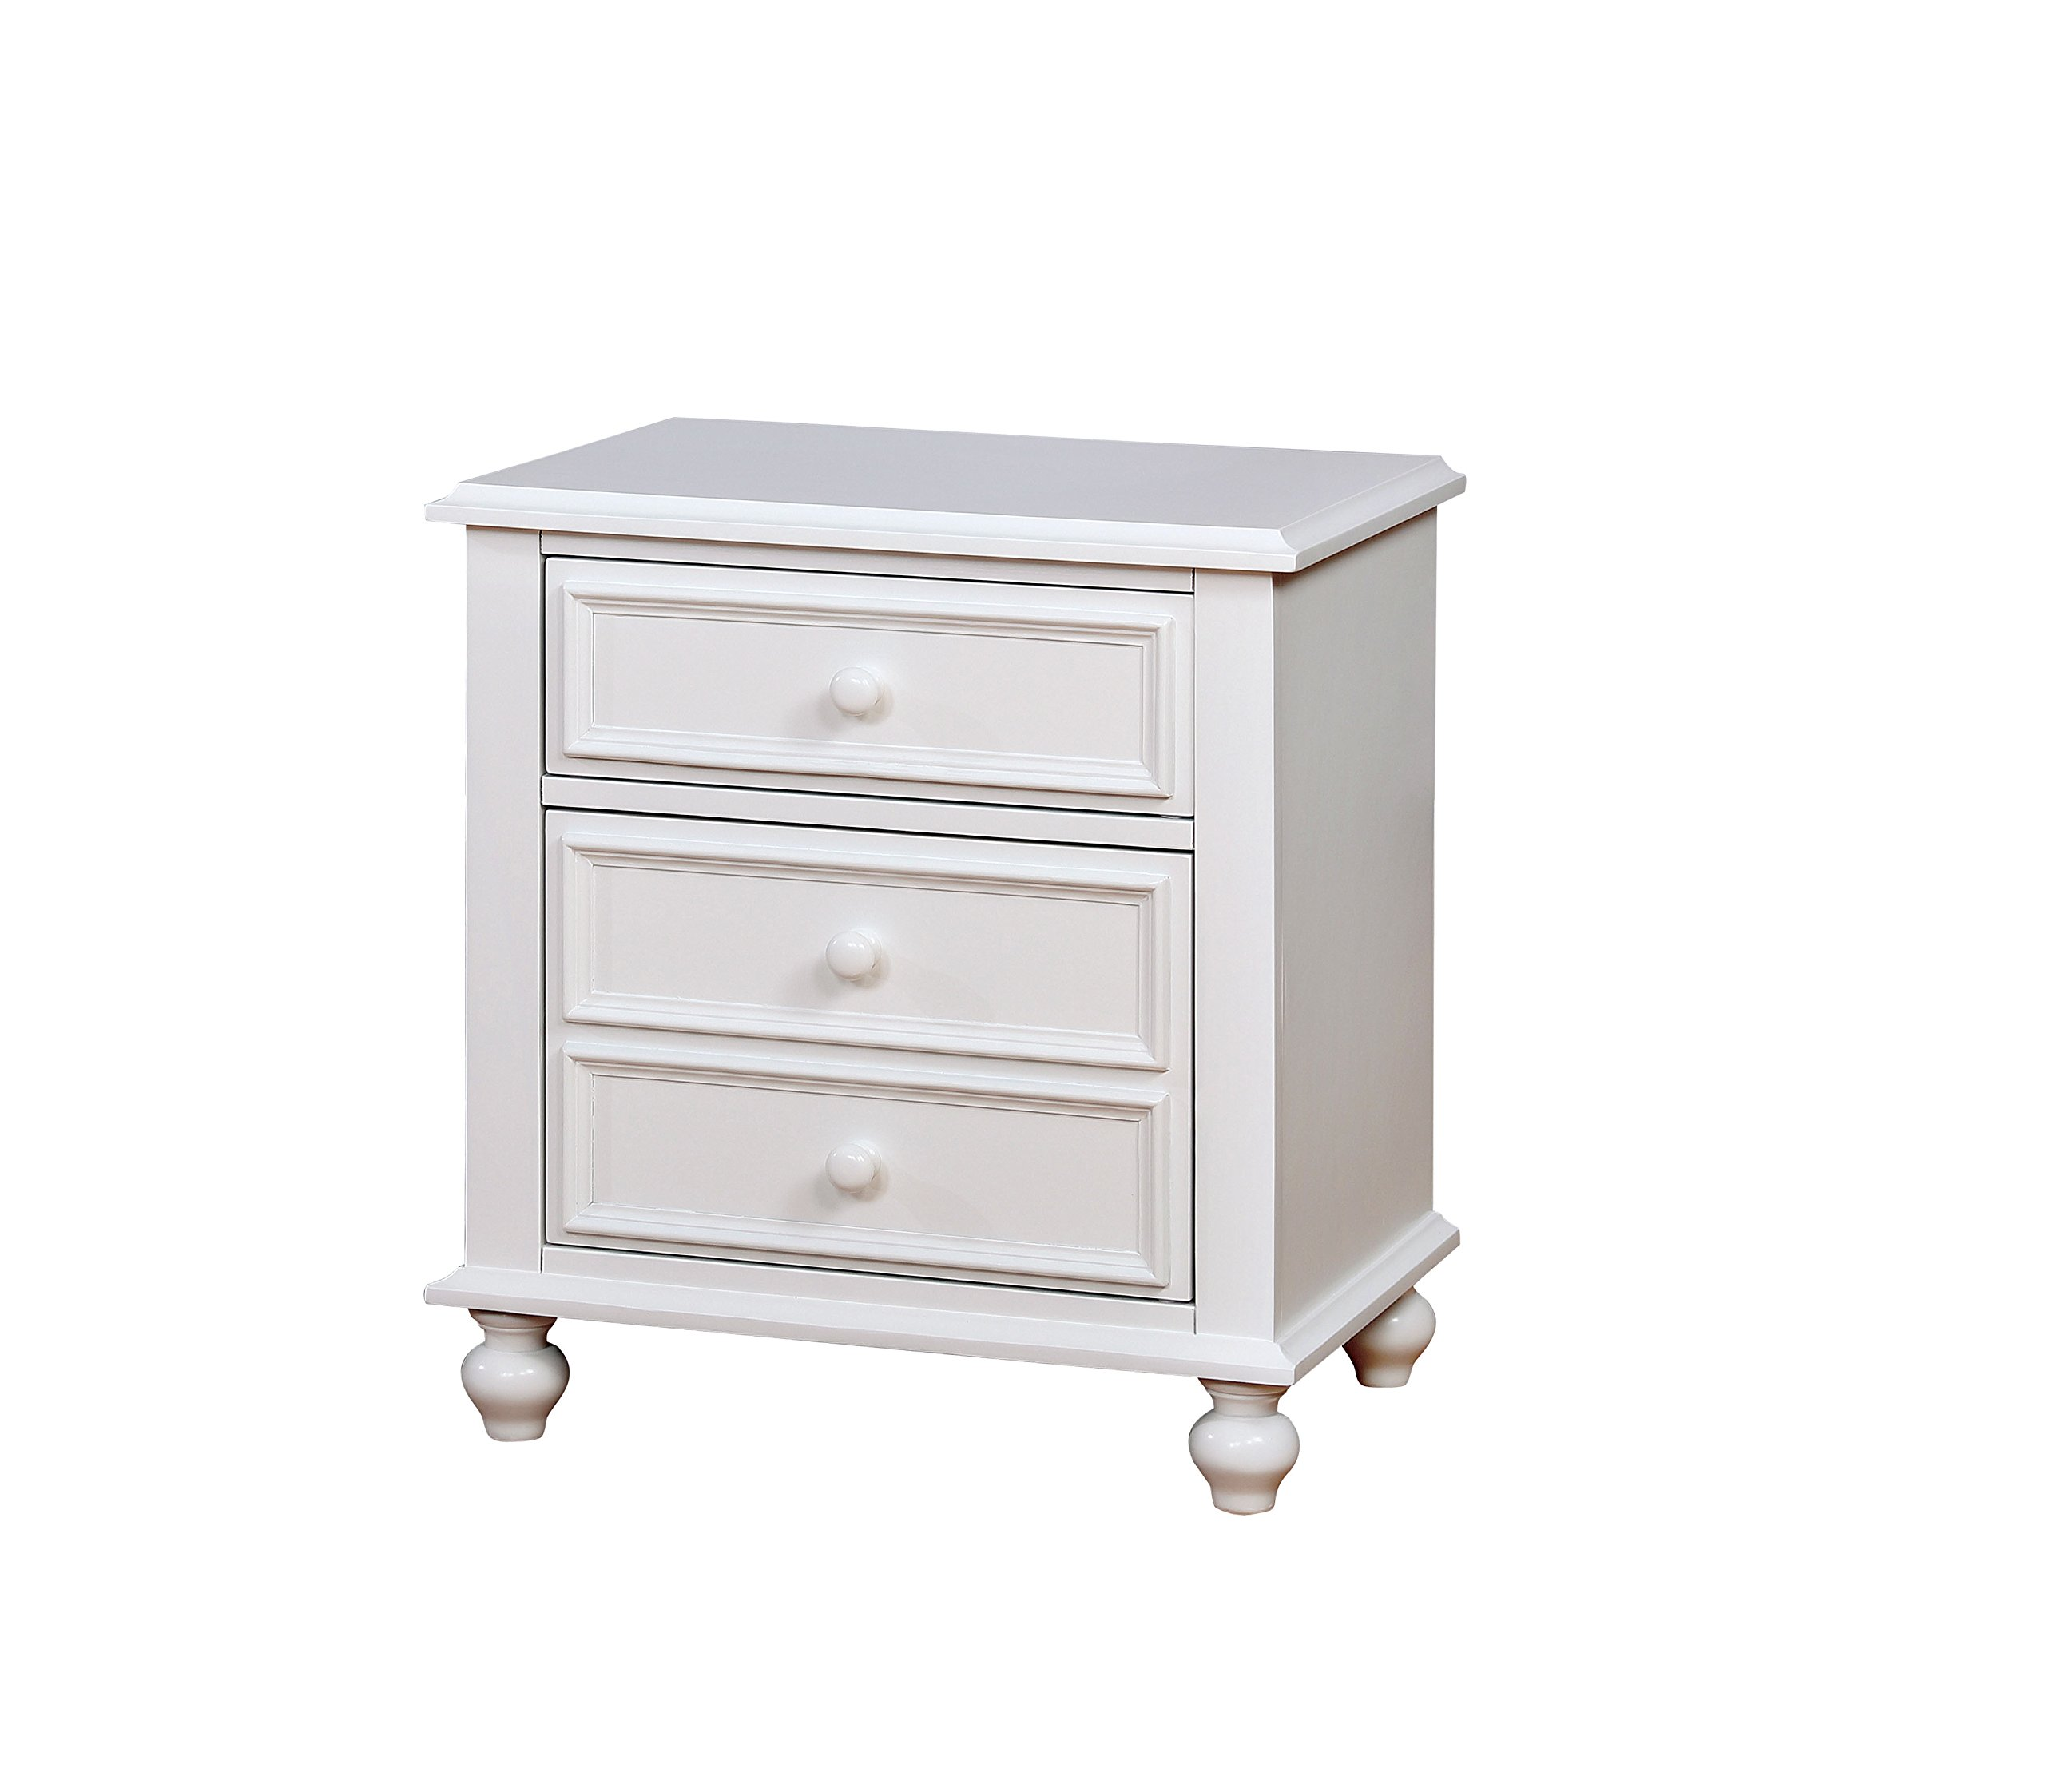 HOMES: Inside + Out IDF-7155WH-N Colderon Nightstand Childrens, White